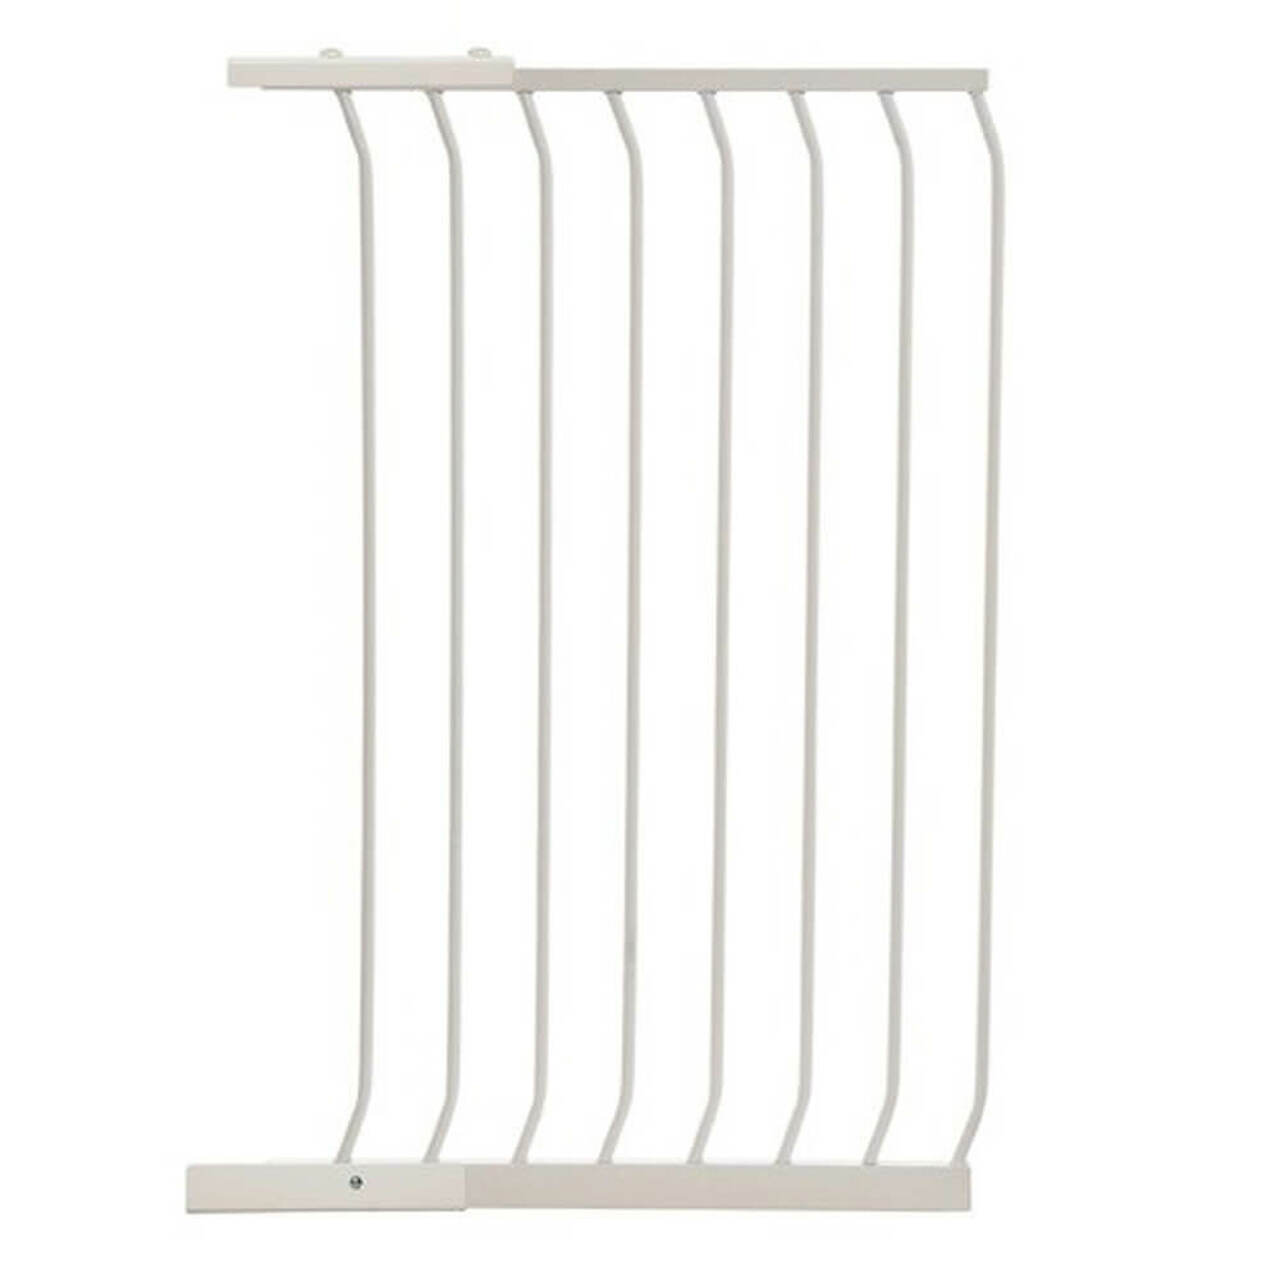 Dreambaby Chelsea 63cm Tall Gate Extension F844 (old packaging) at Baby Barn Discounts Dreambaby® Chelsea Tall Gates are 1M high and provide greater security.